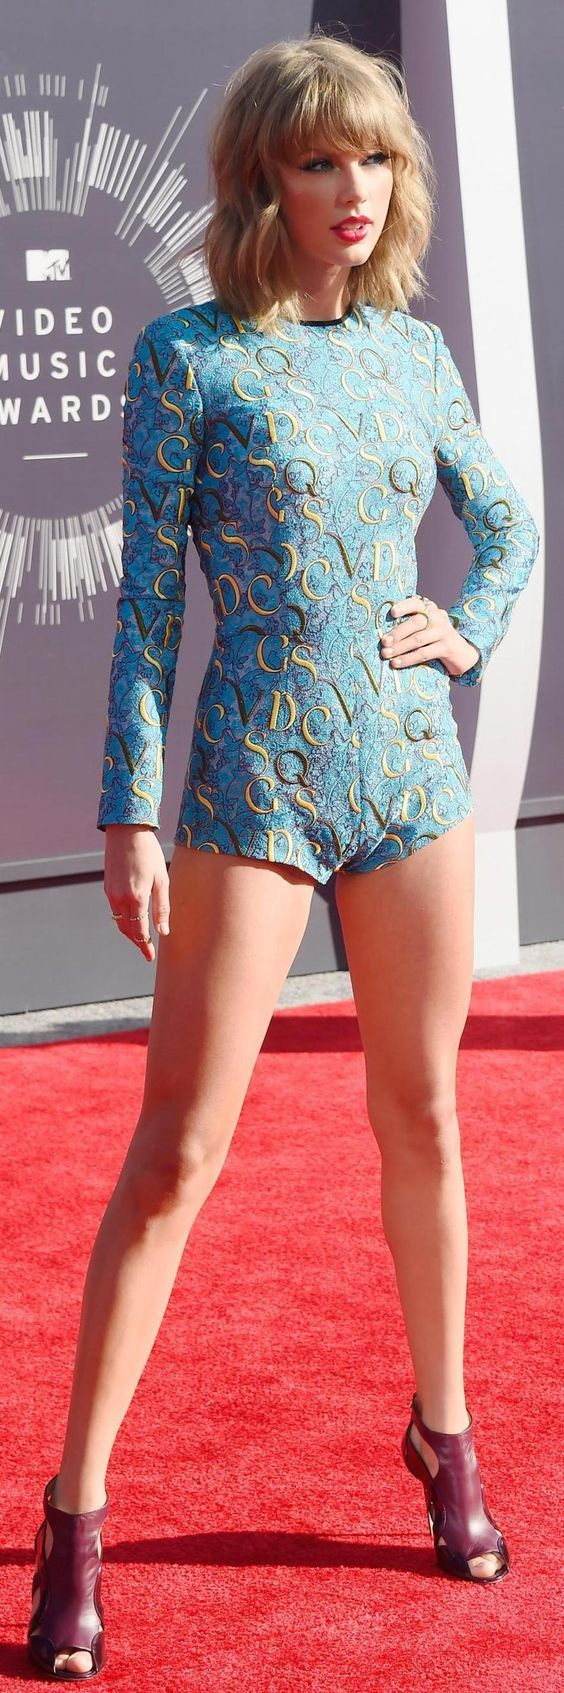 Taylor Swift mtv Awards 2014.: